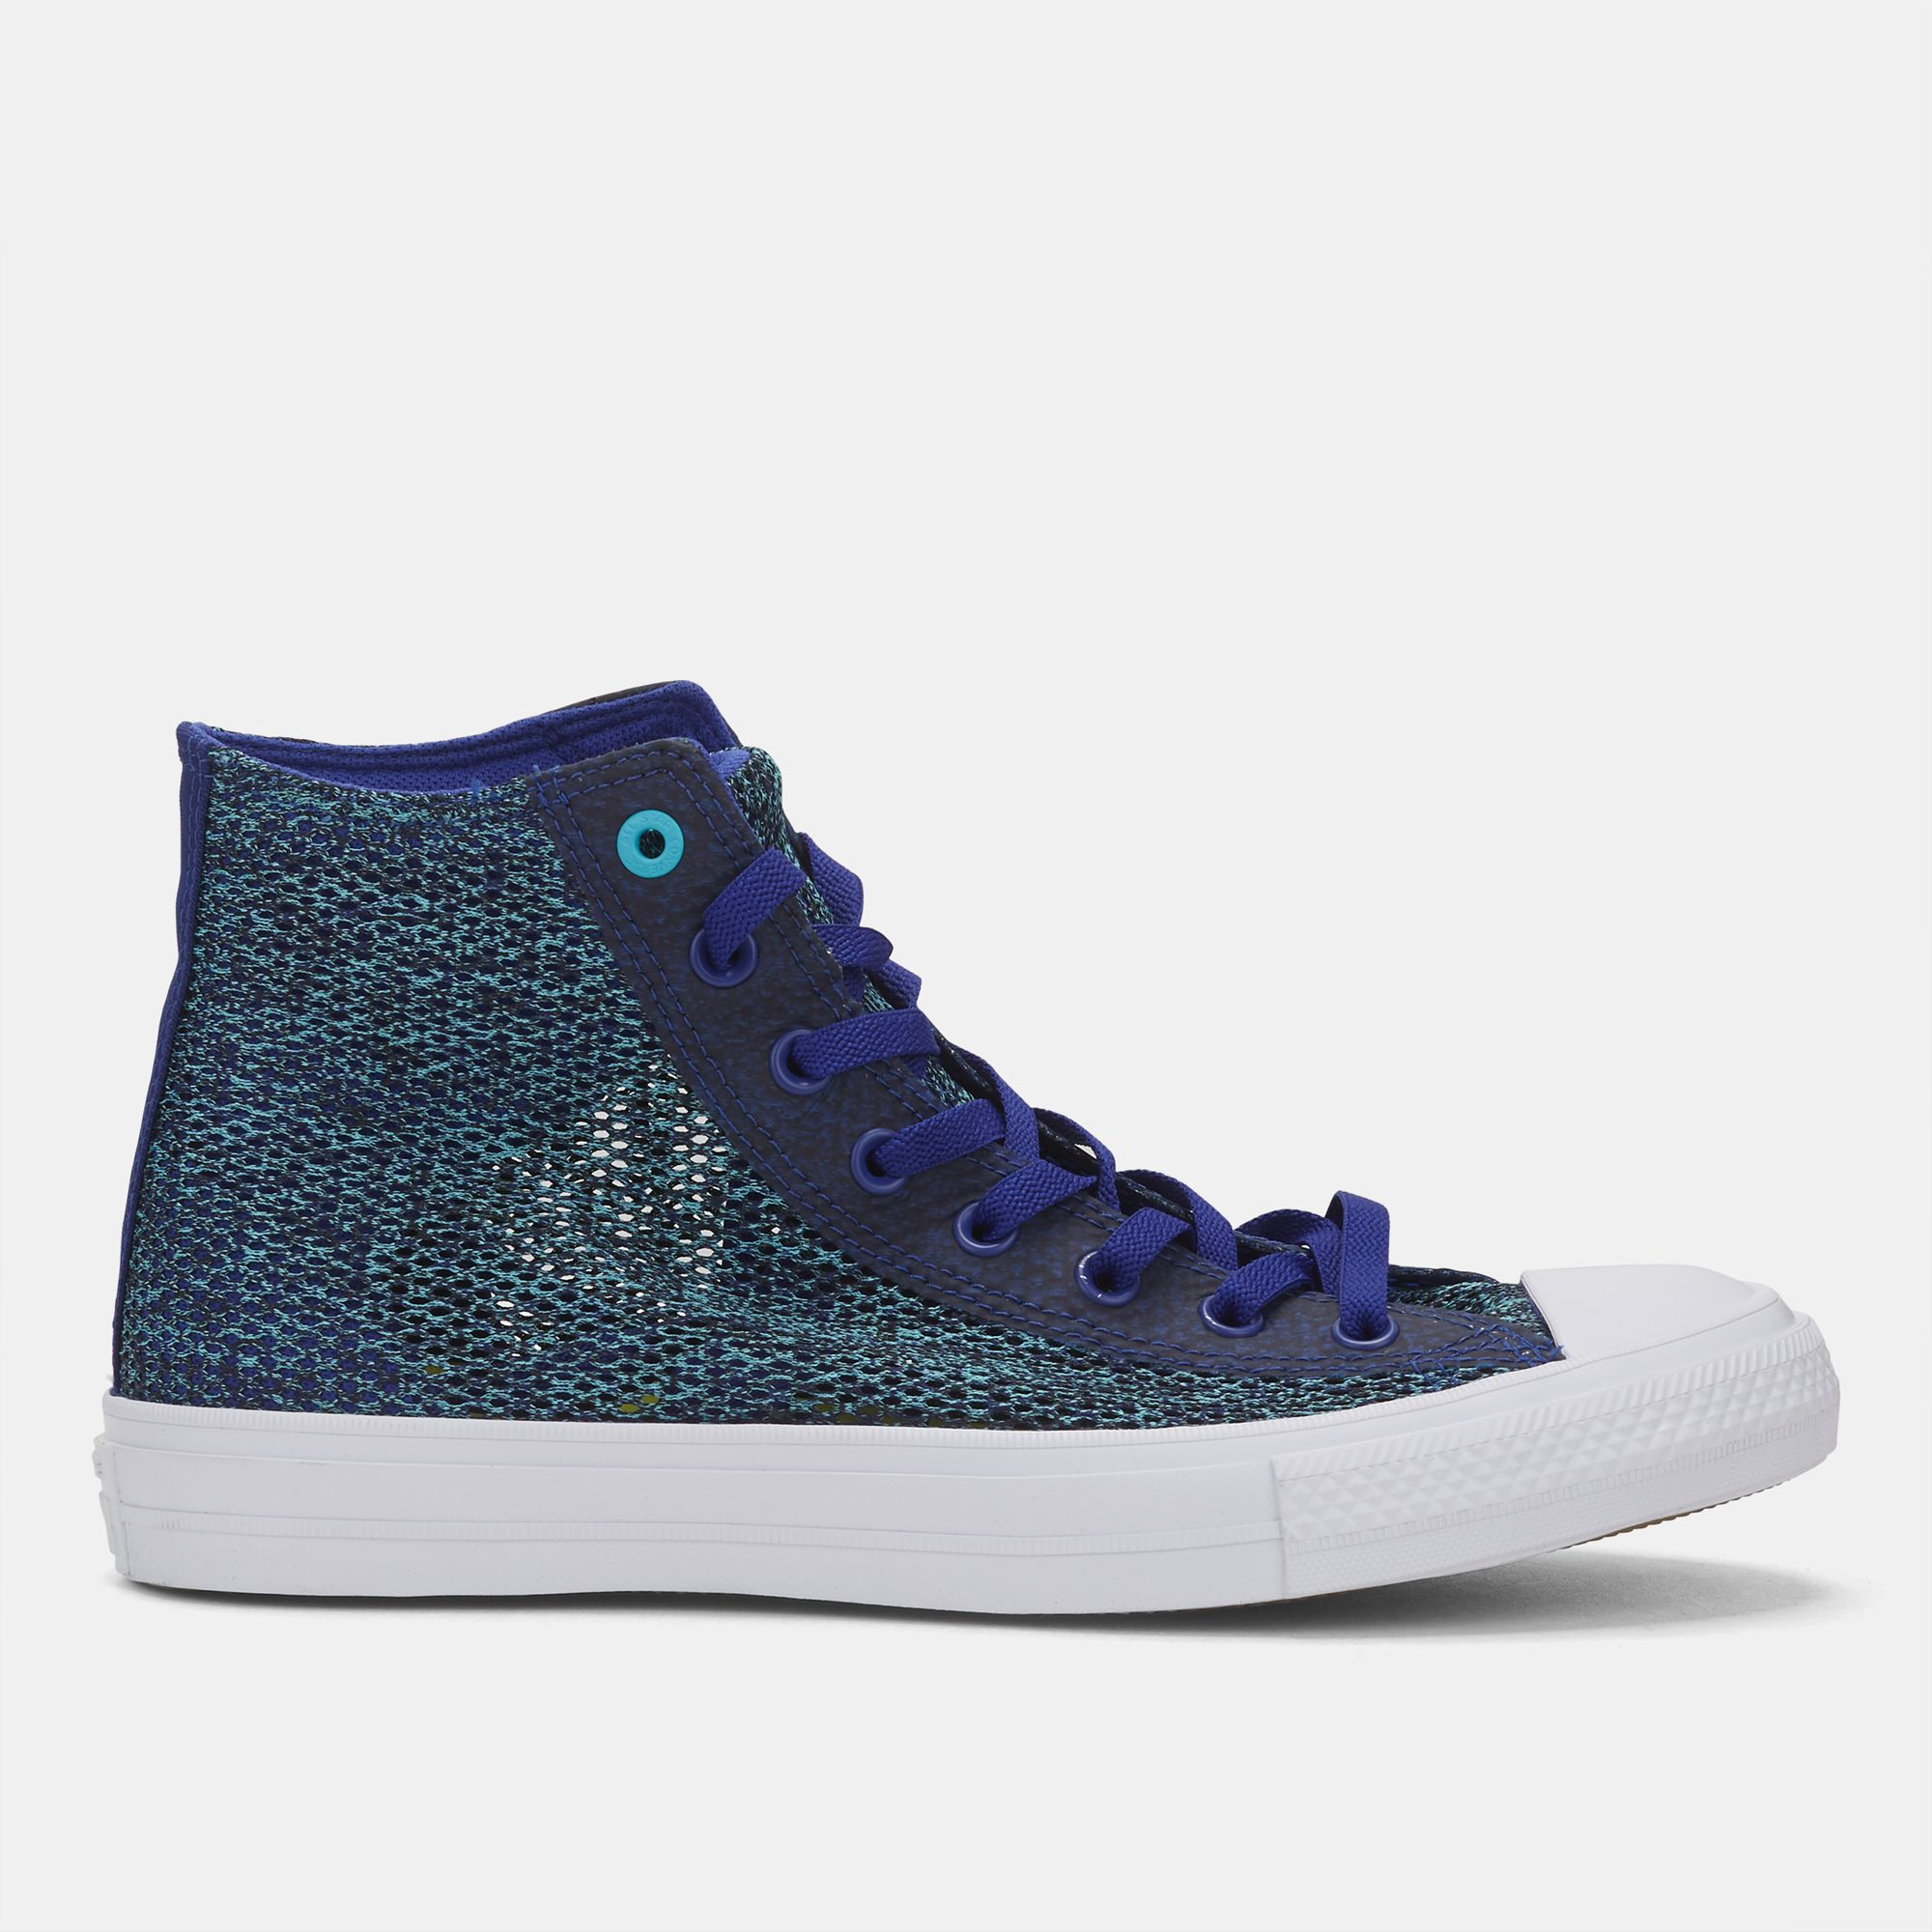 458139e3c2f240 Converse Chuck Taylor All Star II Open Knit Hi-Top Shoe